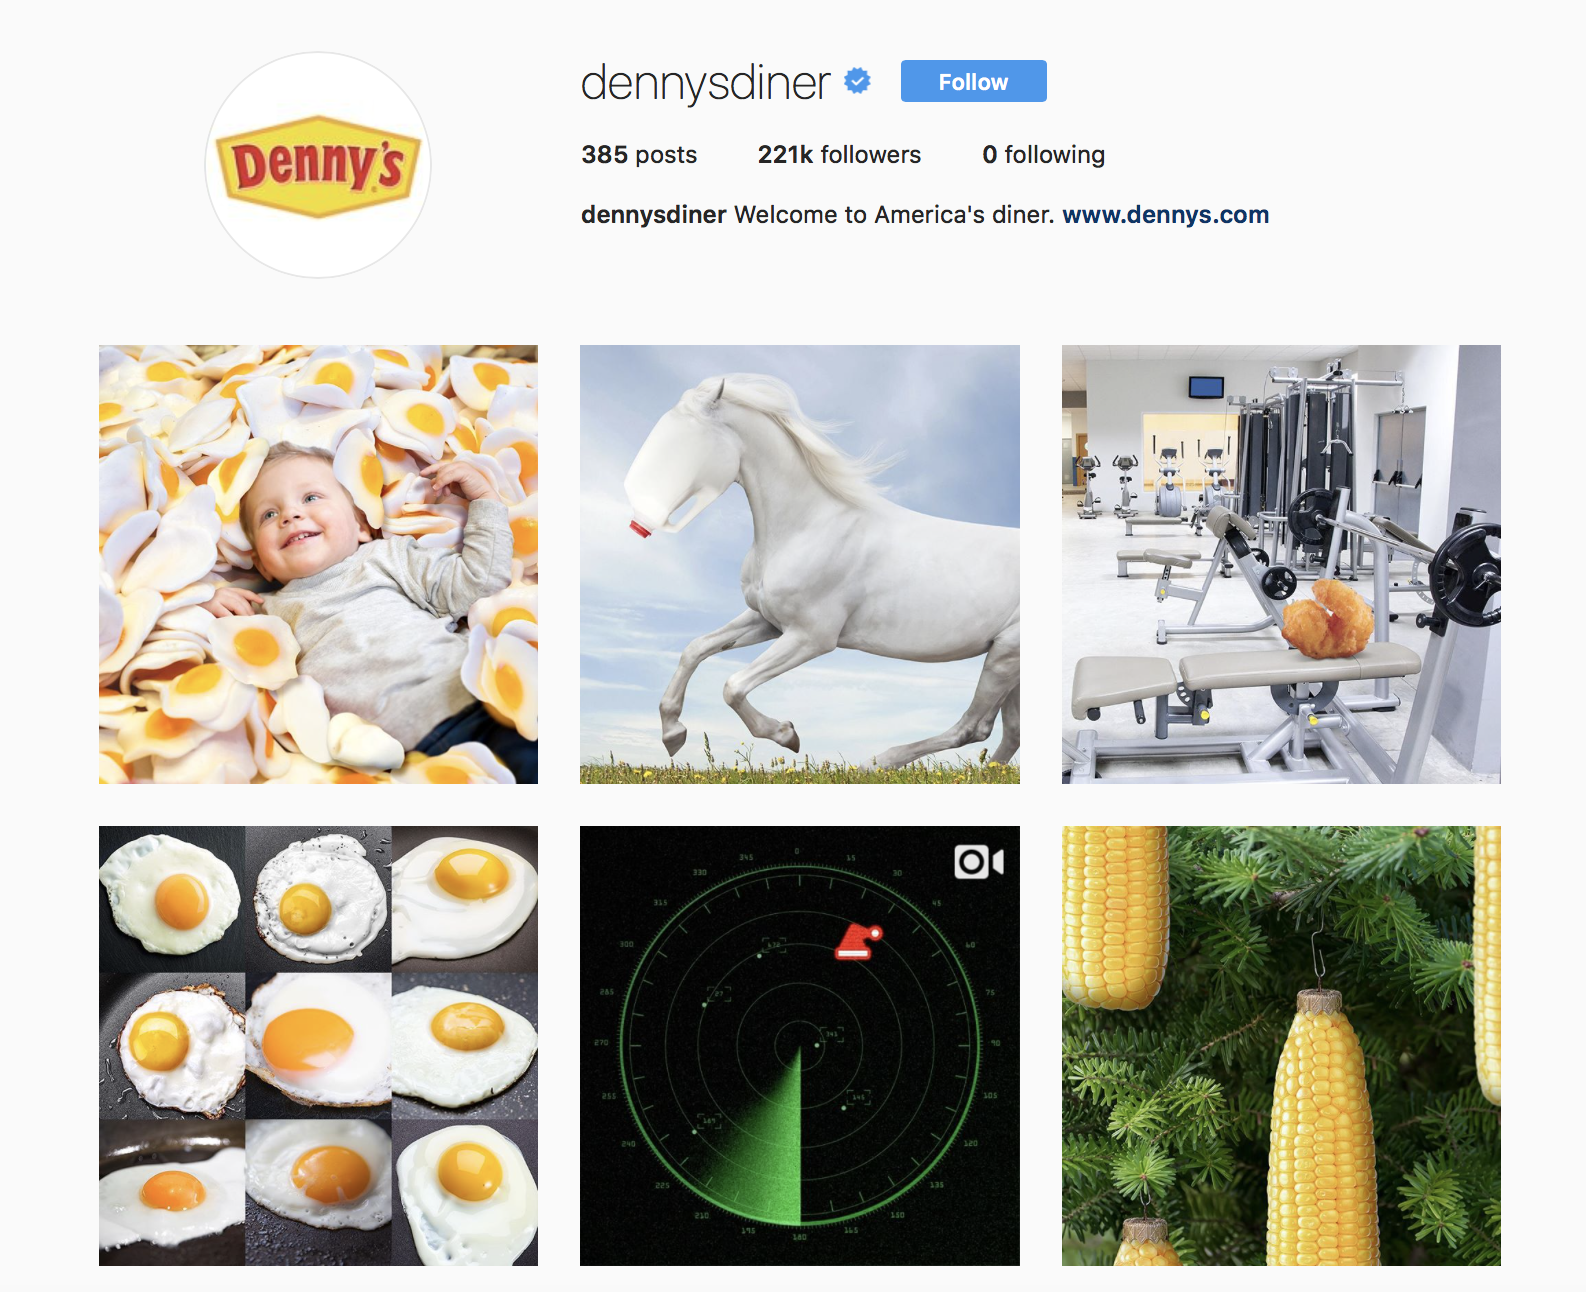 denny-diner-best-brands-on-instagram